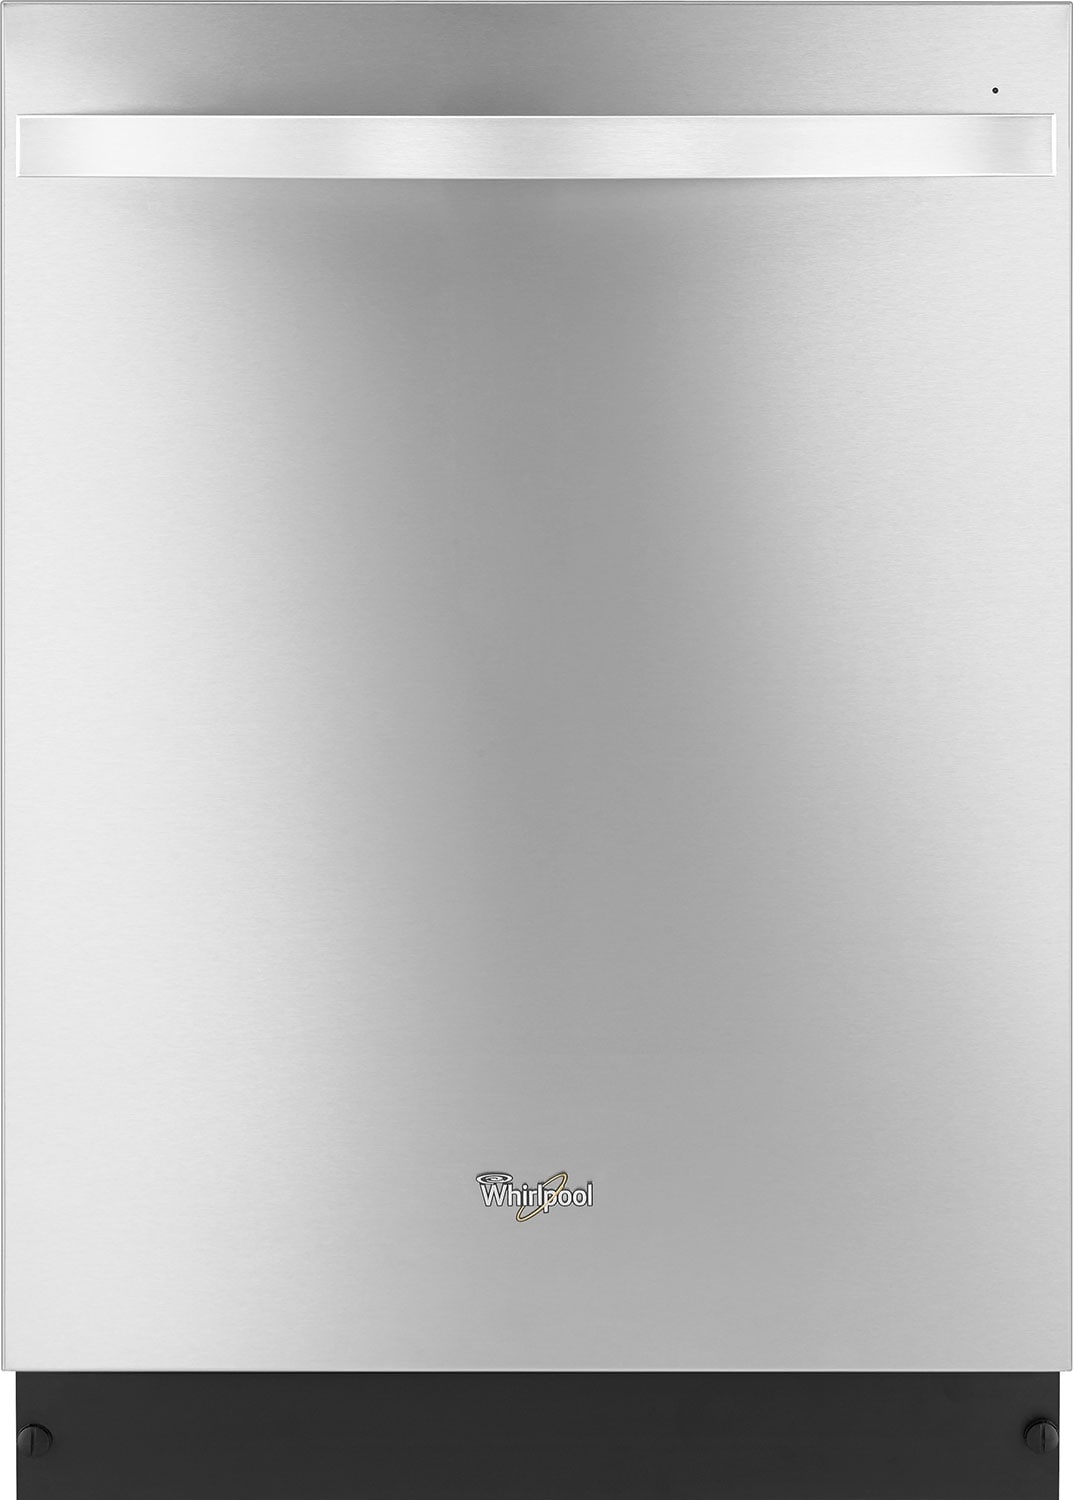 Clean-Up - Whirlpool Gold® Built-In Dishwasher with TotalCoverage Spray Arm – Stainless Steel